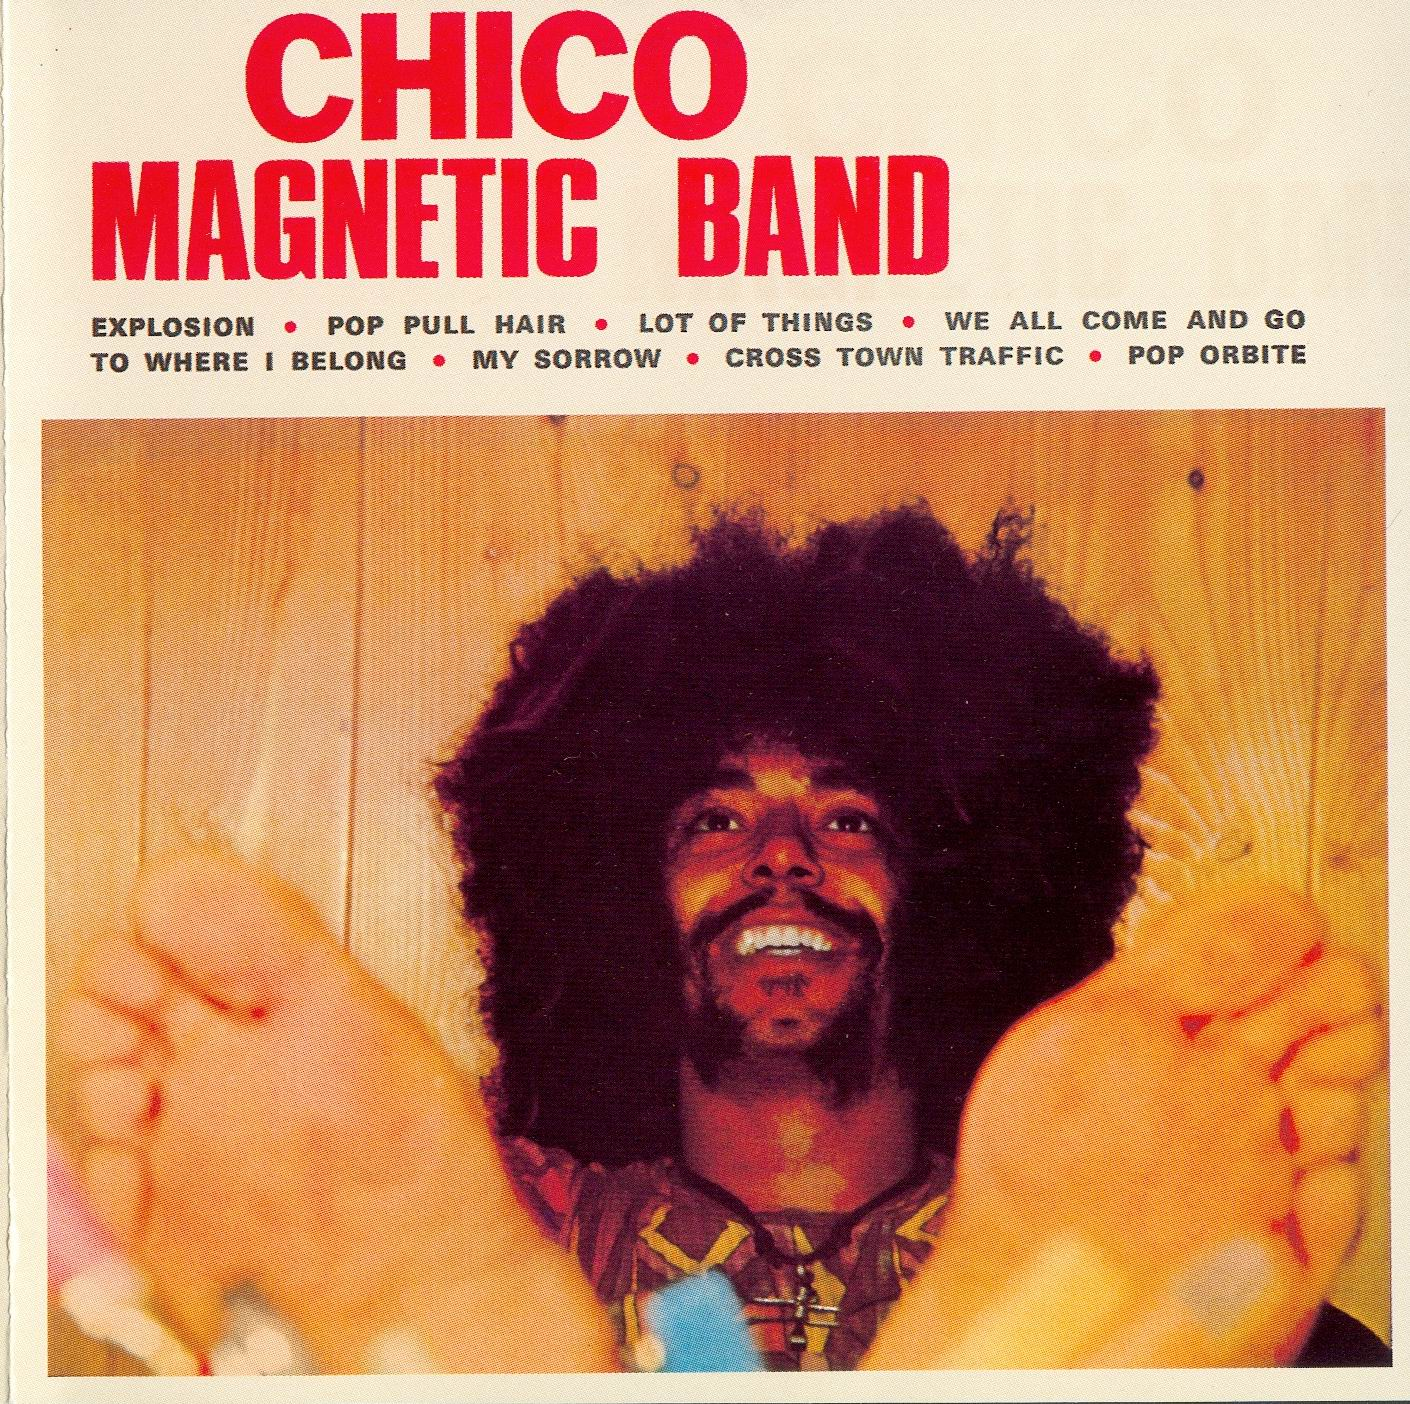 Chico Magnetic Band Pop Or Not Inverse Pop